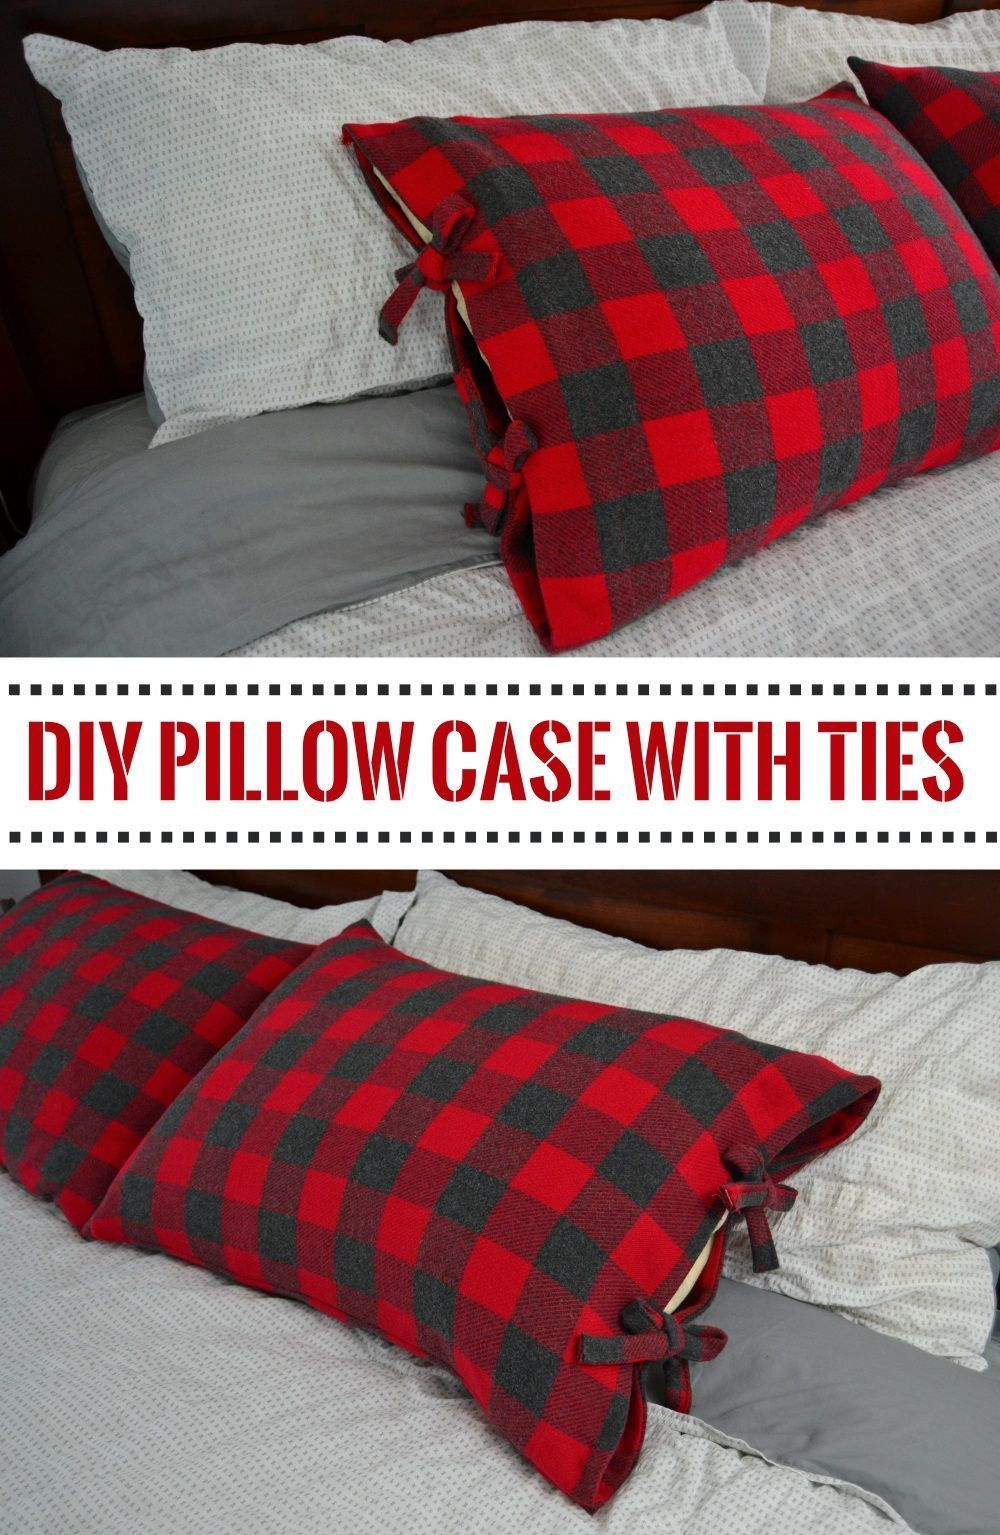 Diy pillowcases bed pillowcases with ties easy sewing projects